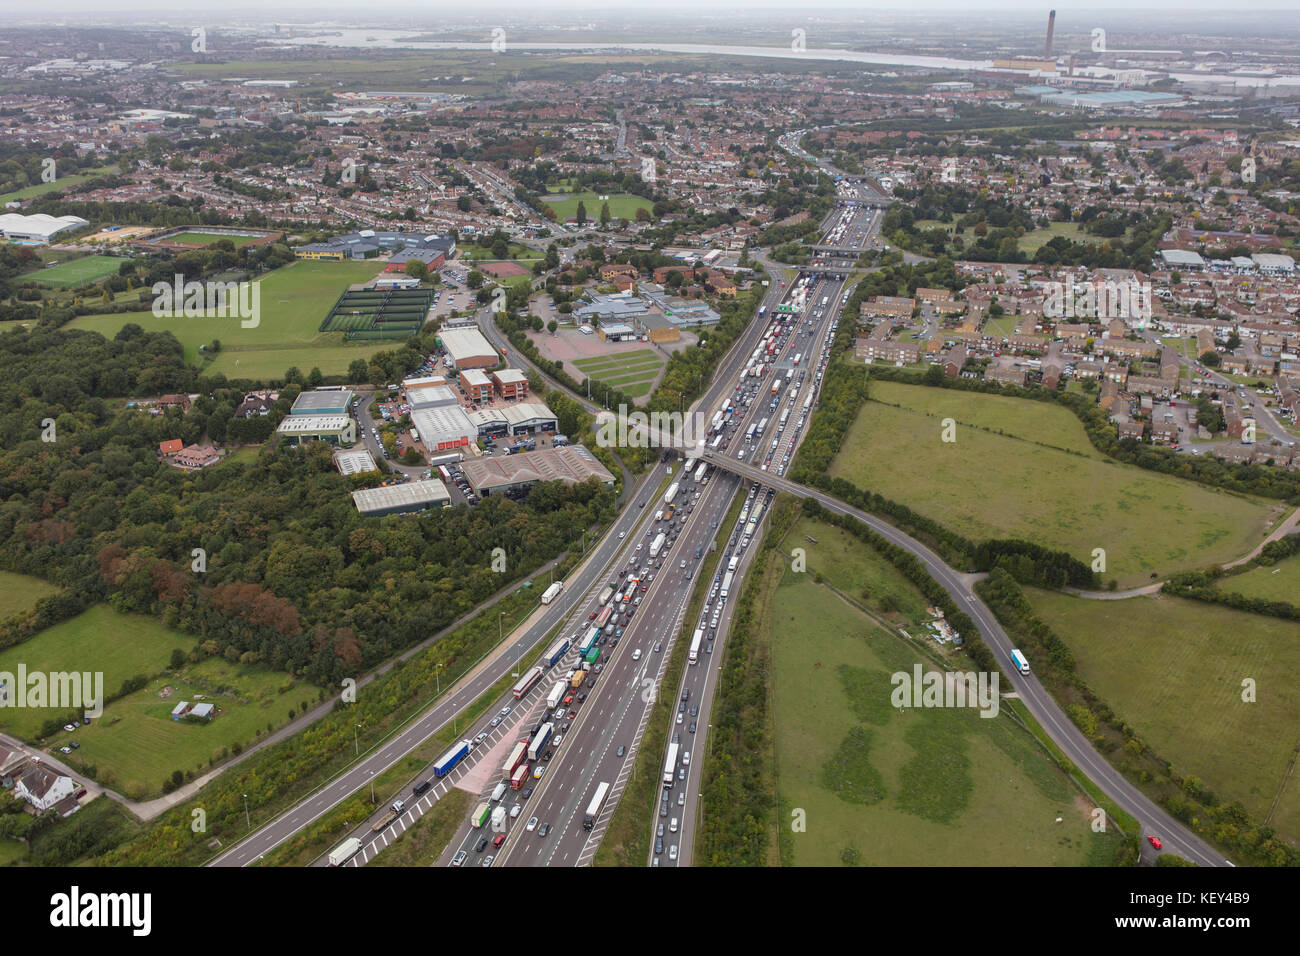 An aerial view of traffic congestion on the M25 heading from Junction 2 towards the Dartford Crossing - Stock Image